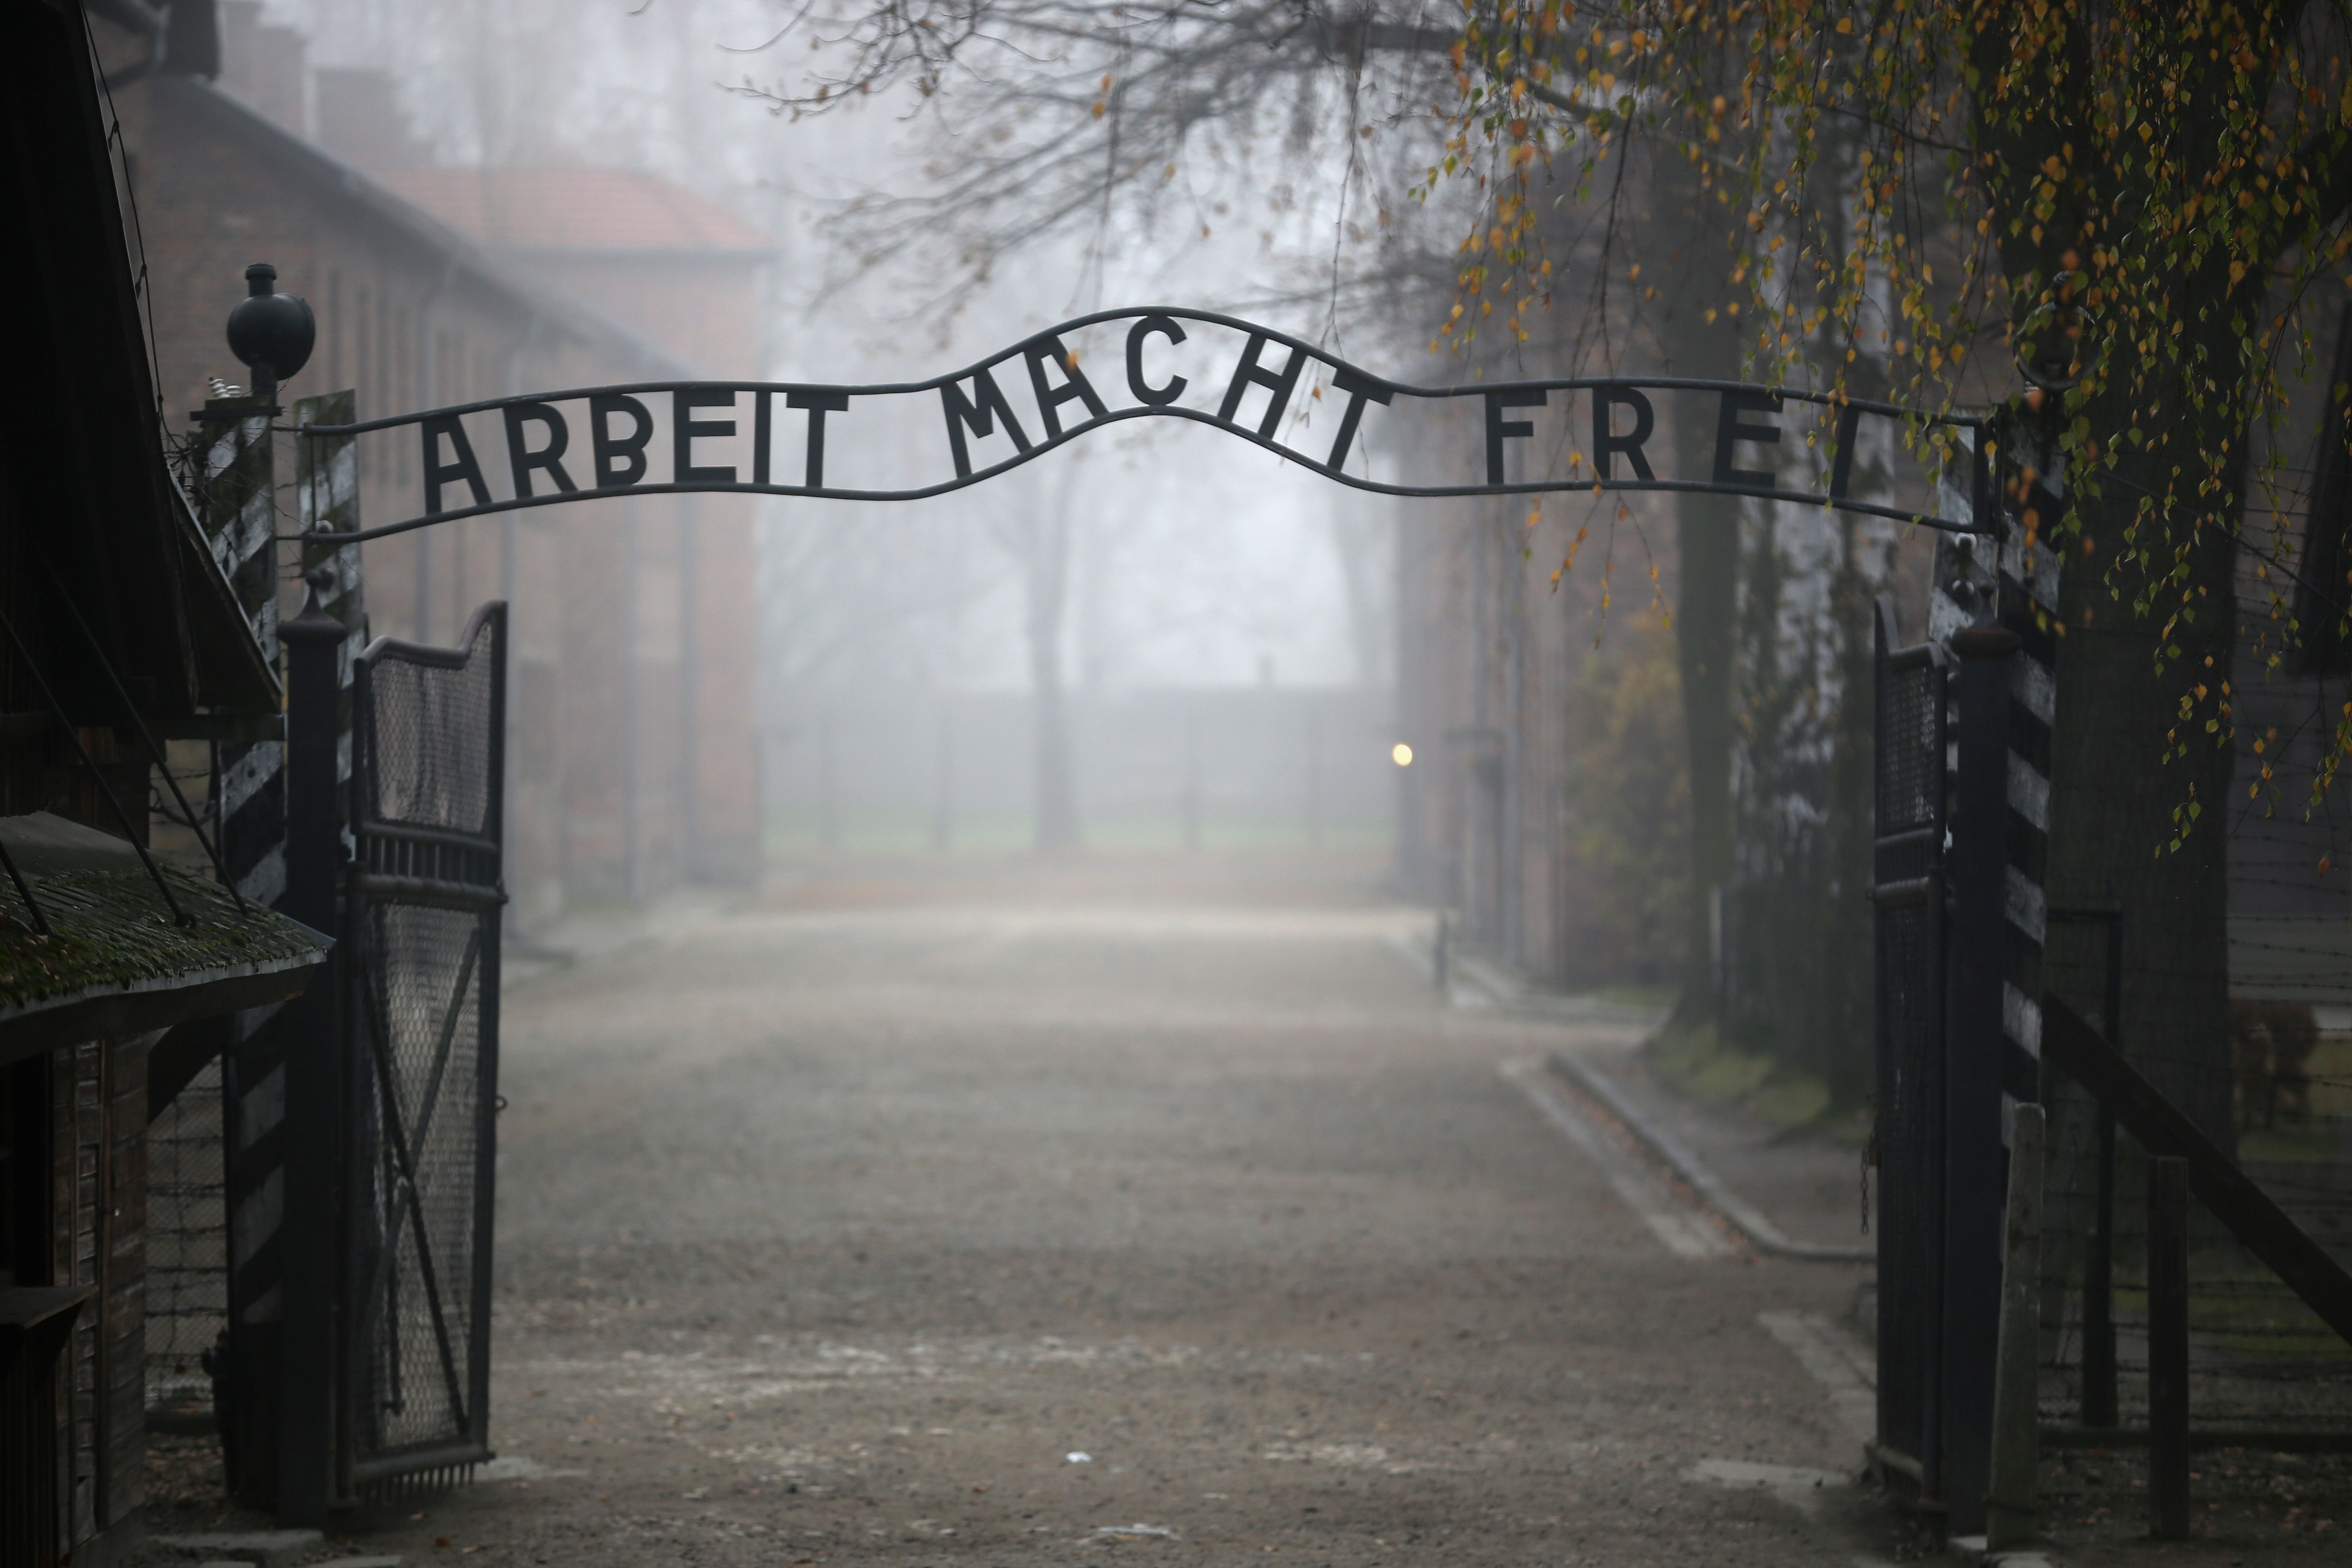 Facts You Should Know About the Holocaust